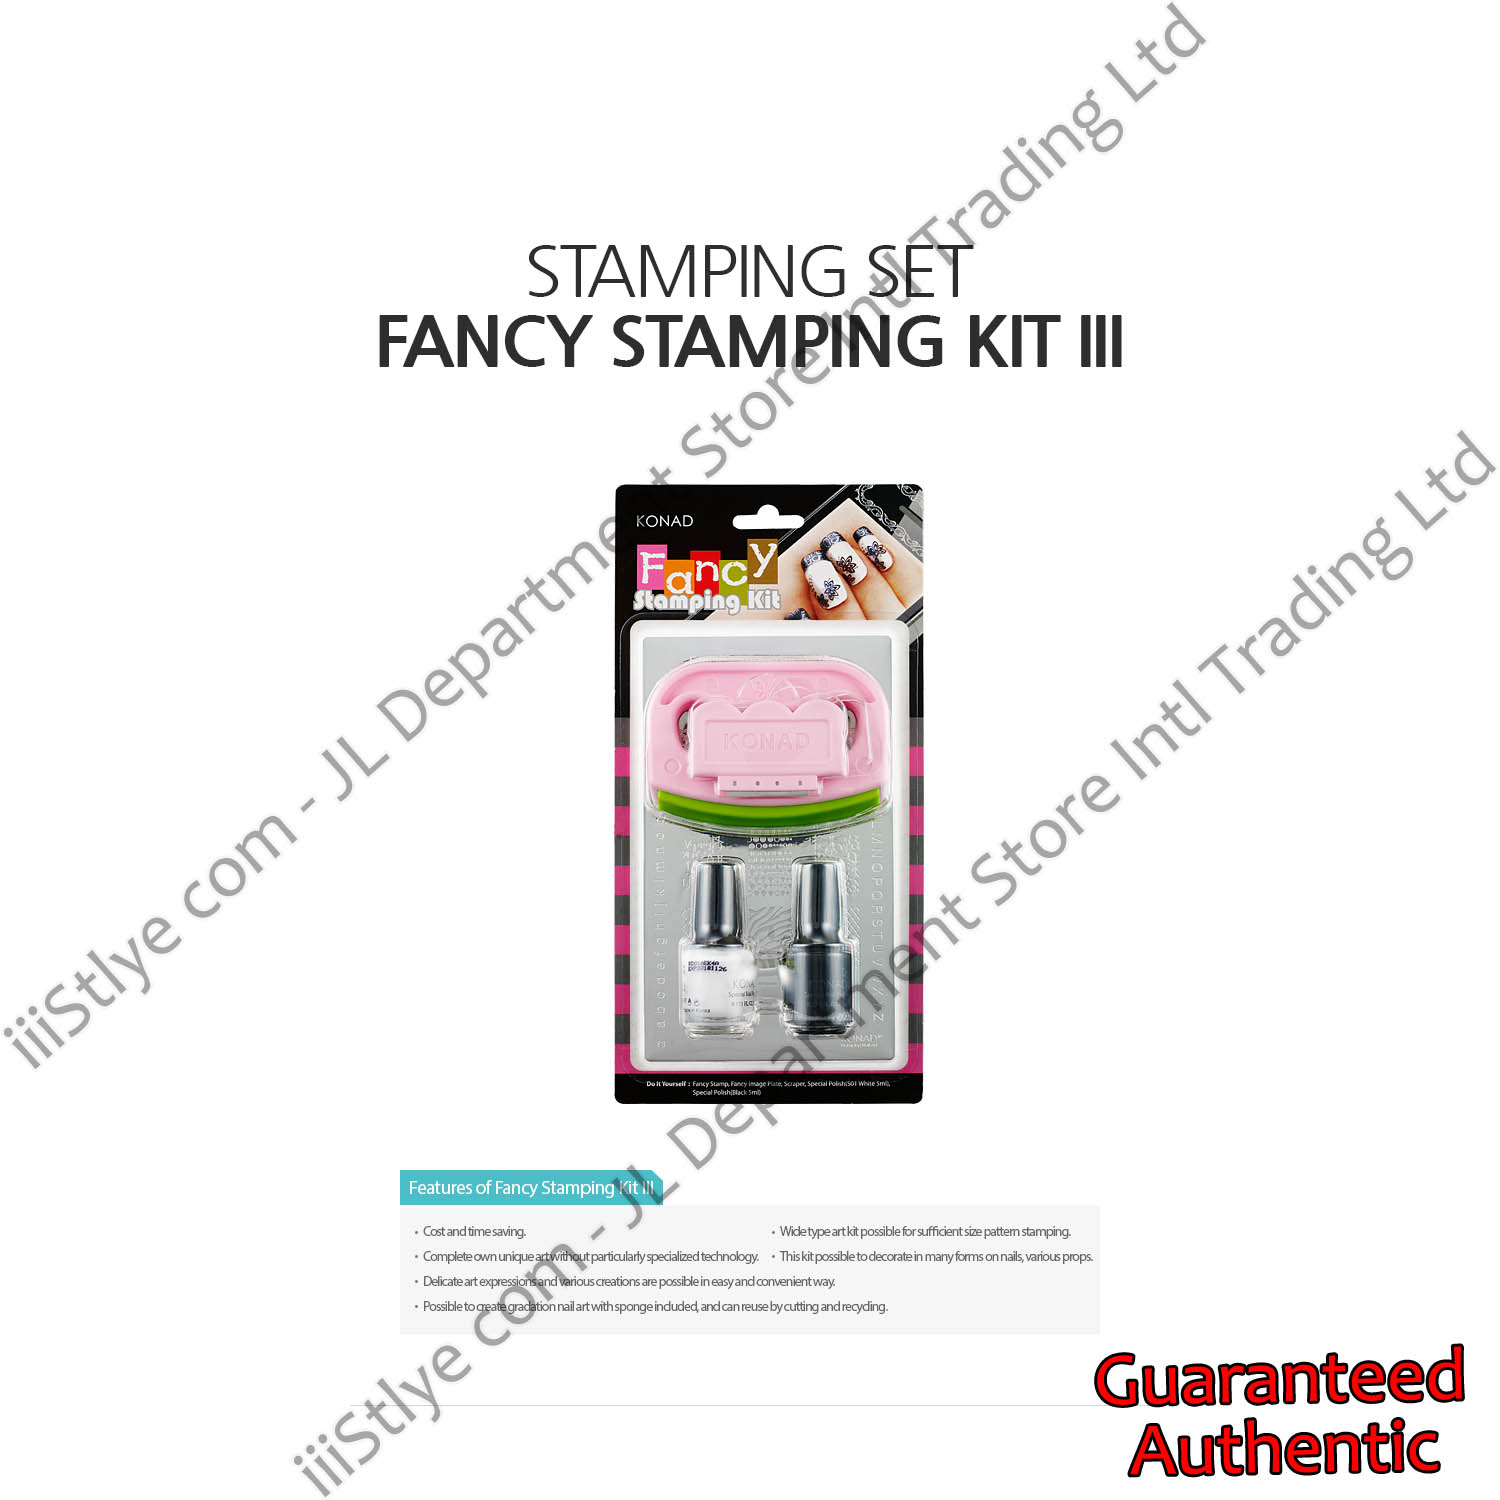 stamping set fancy stamping kit III